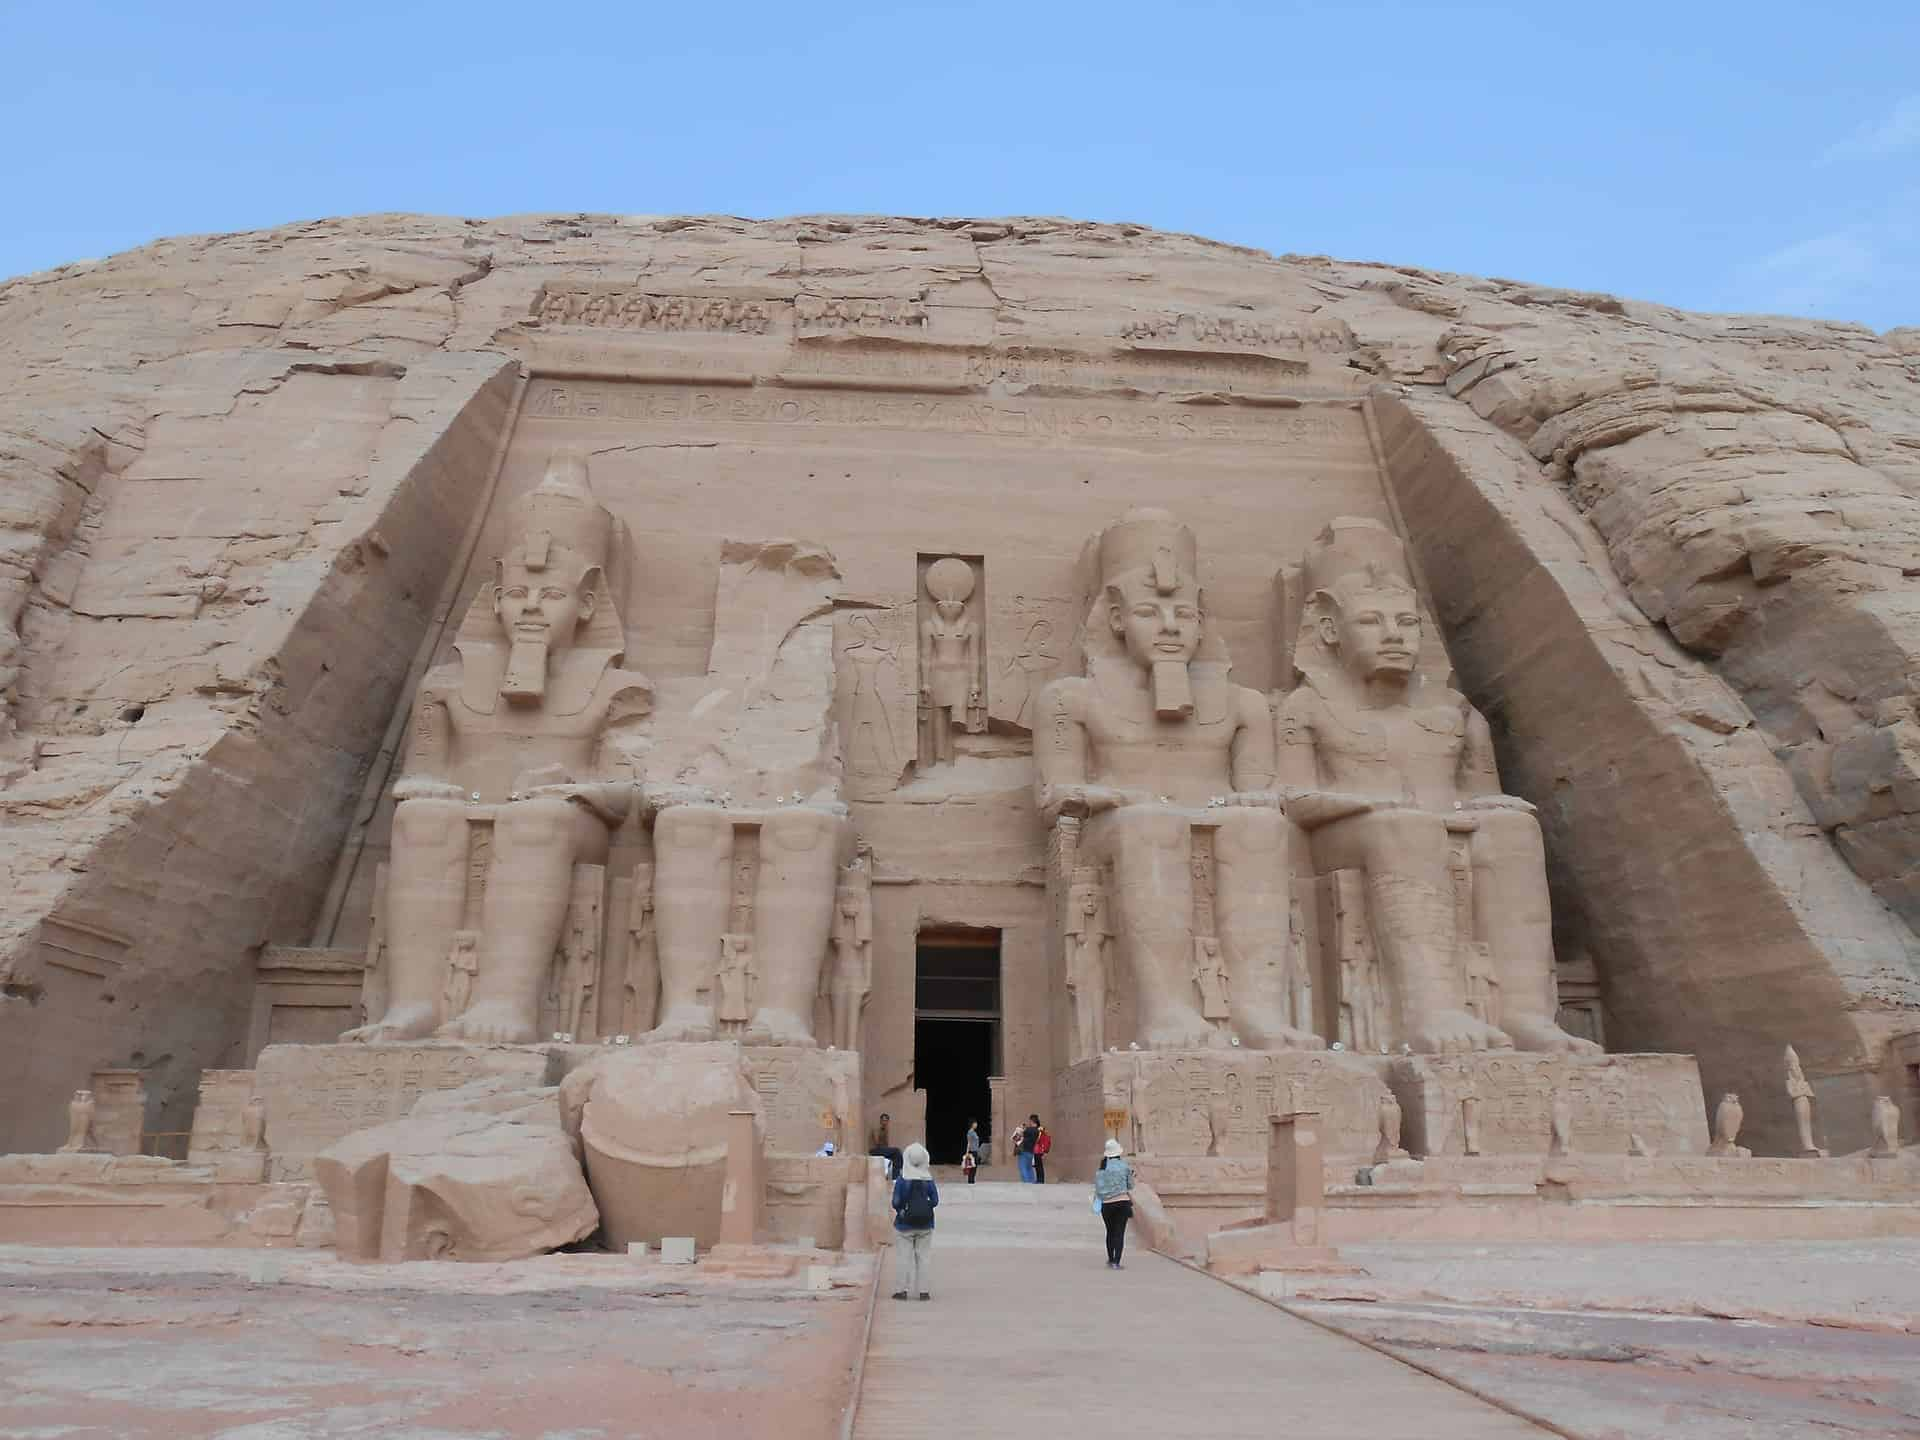 Abu Simbel temple, one of the most amazing historical sites in upper Egypt